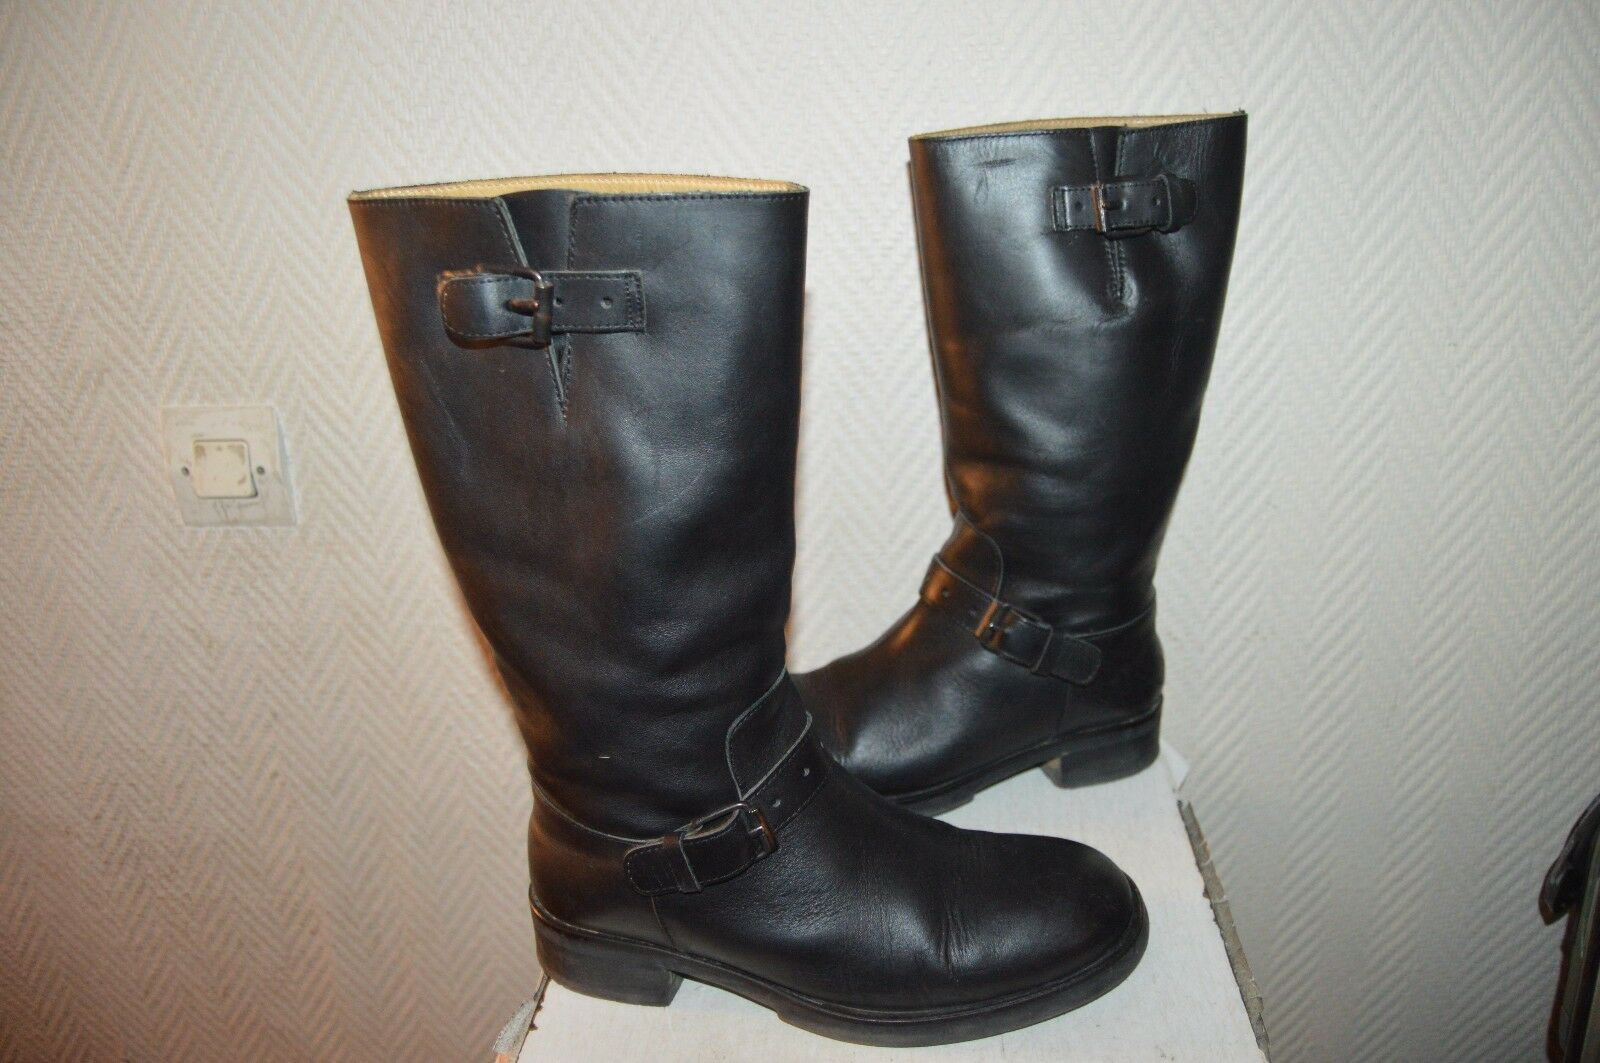 152a398f2ea679 BOTTES CUIR MOSQUITOS TAILLE 38,5 RANGERS LEATHER BOOTS/BOTAS/STIVALI BE |  Outlet Store 2185e9